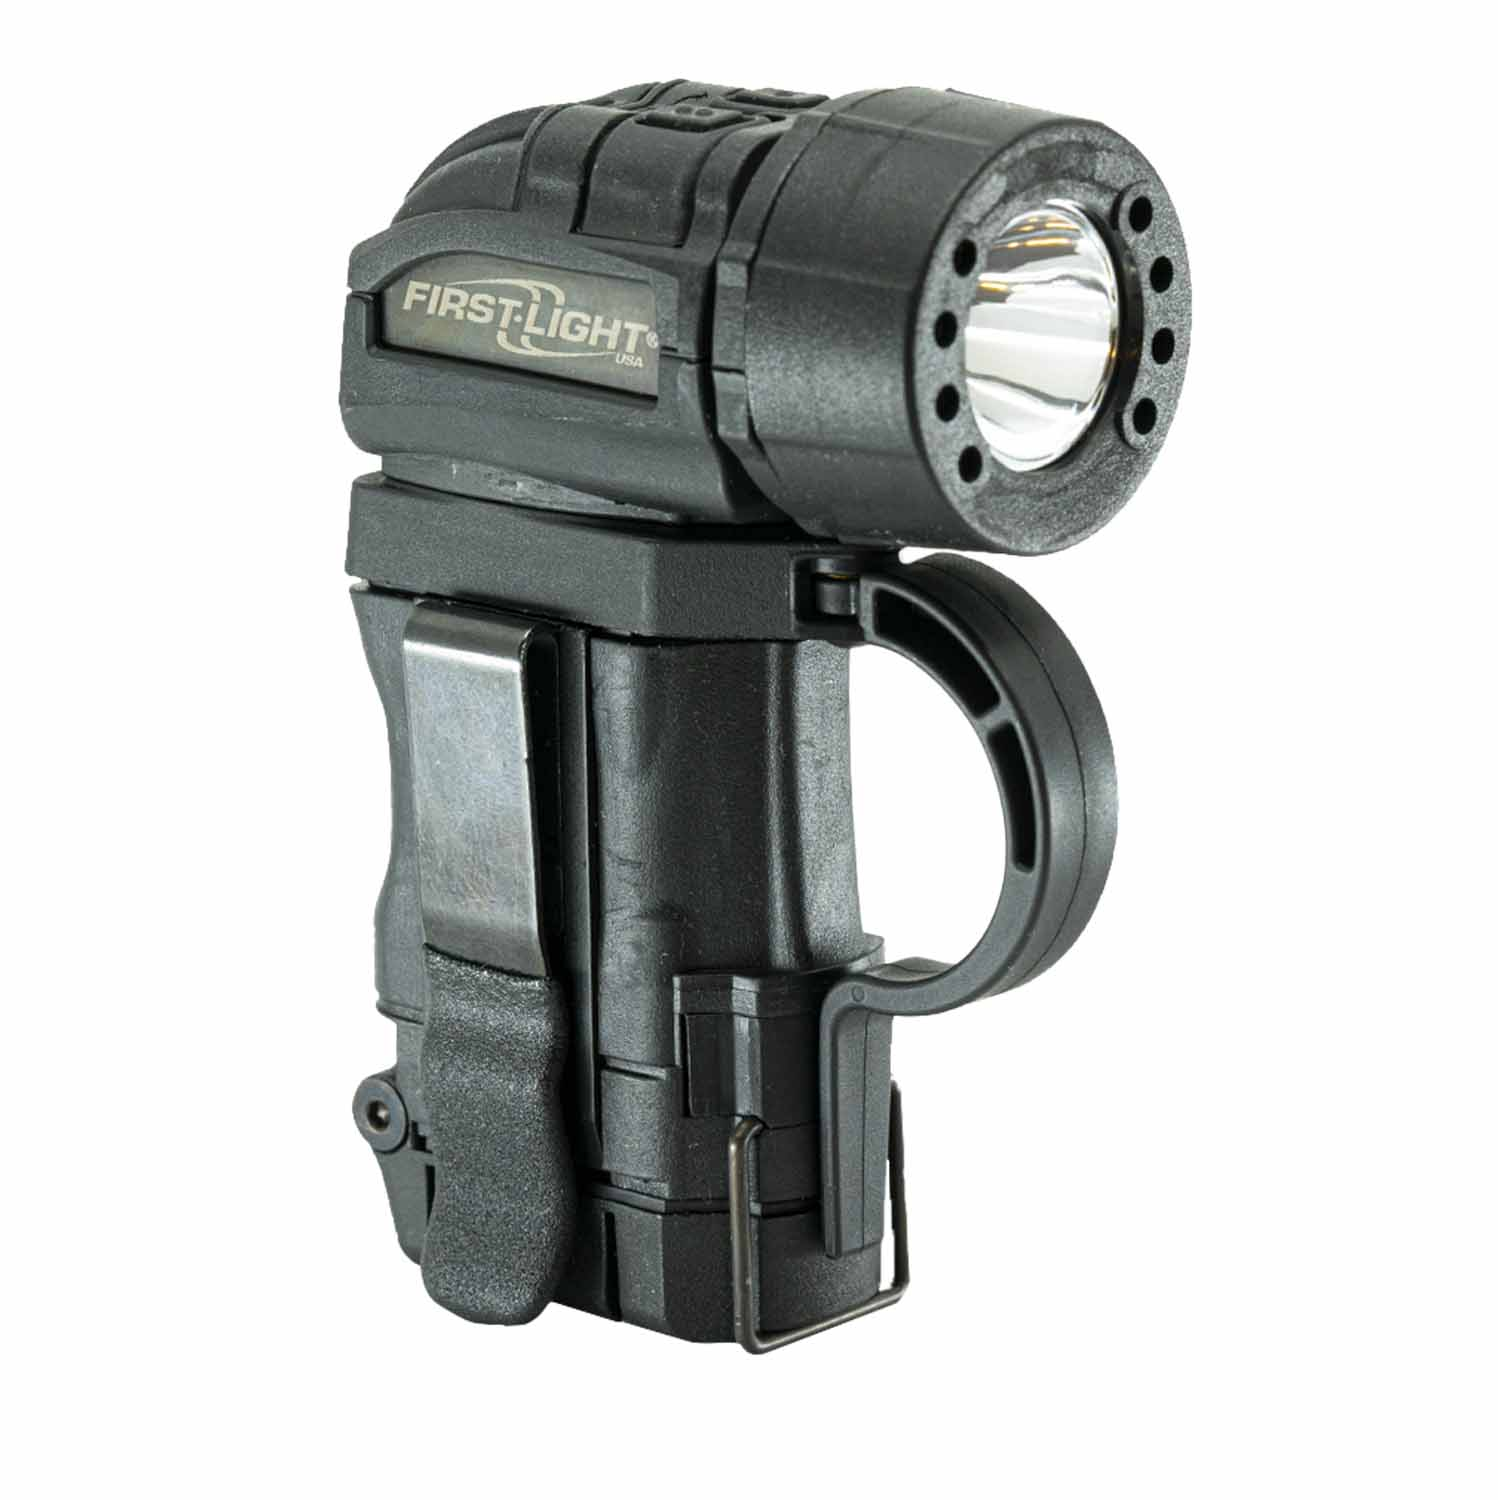 Flash Light First Light Usa Torq Le Tactical Flashlight